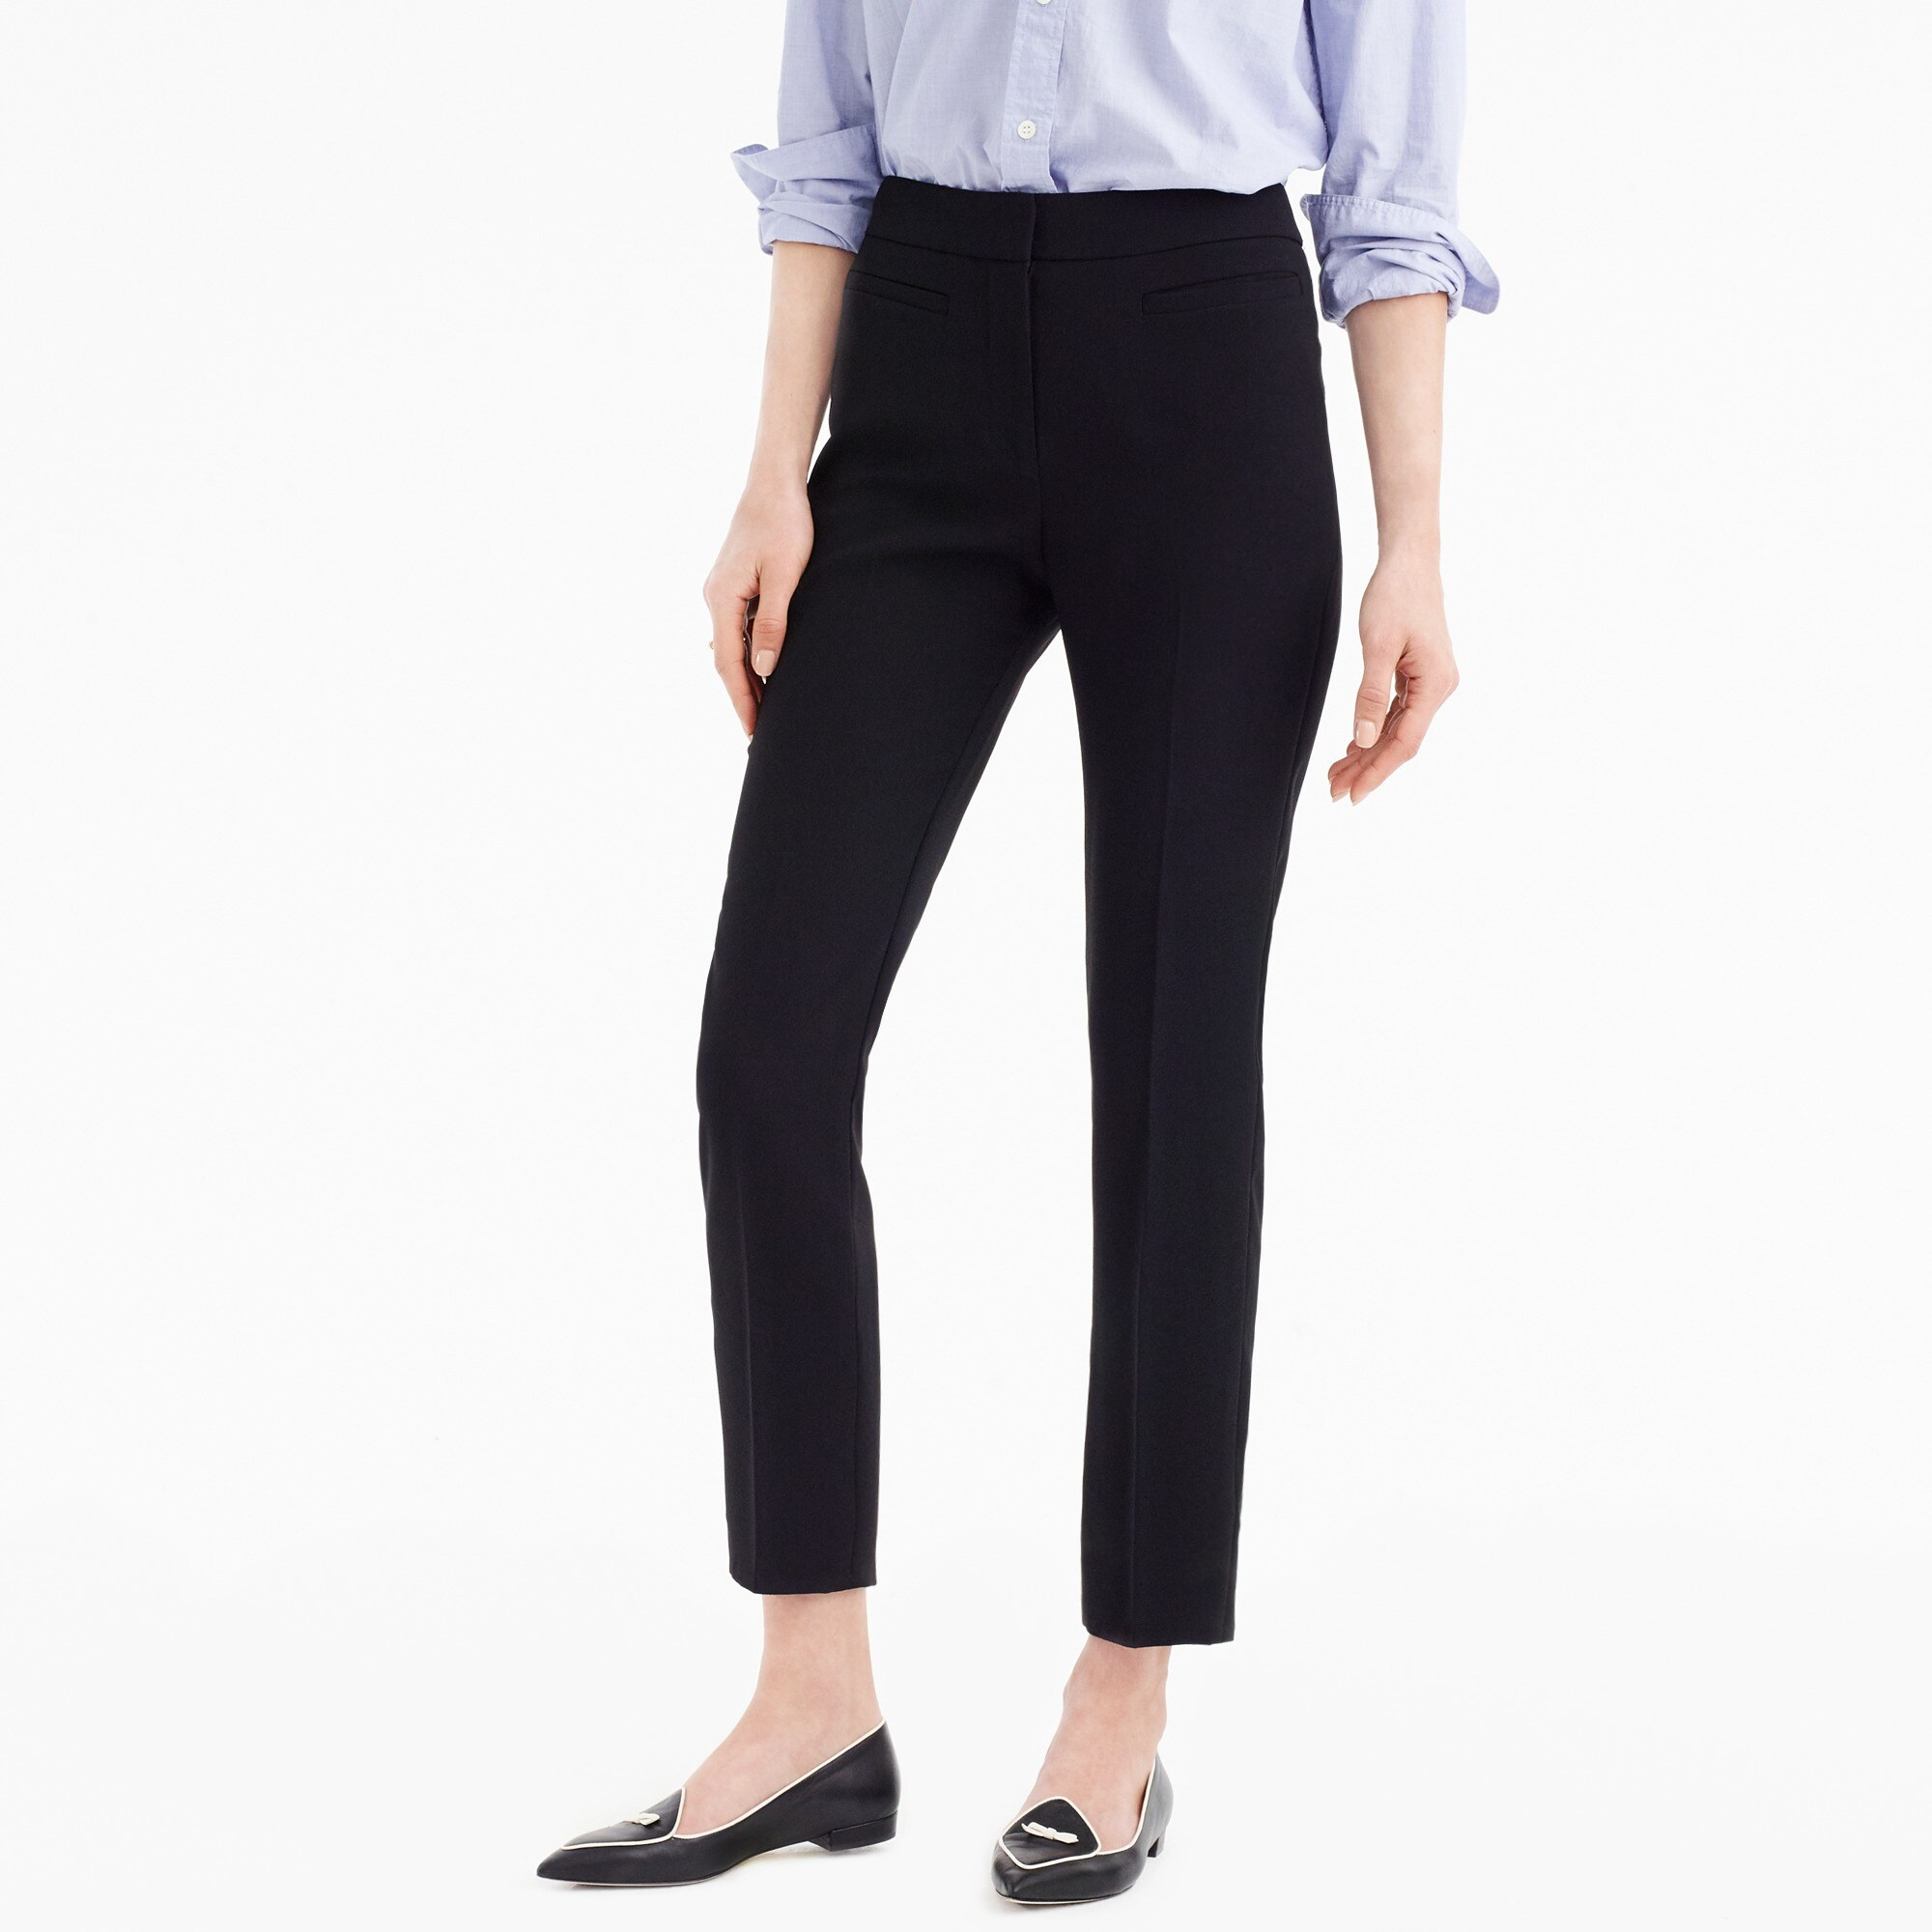 Image 1 for Tall French girl slim crop pant in 365 crepe